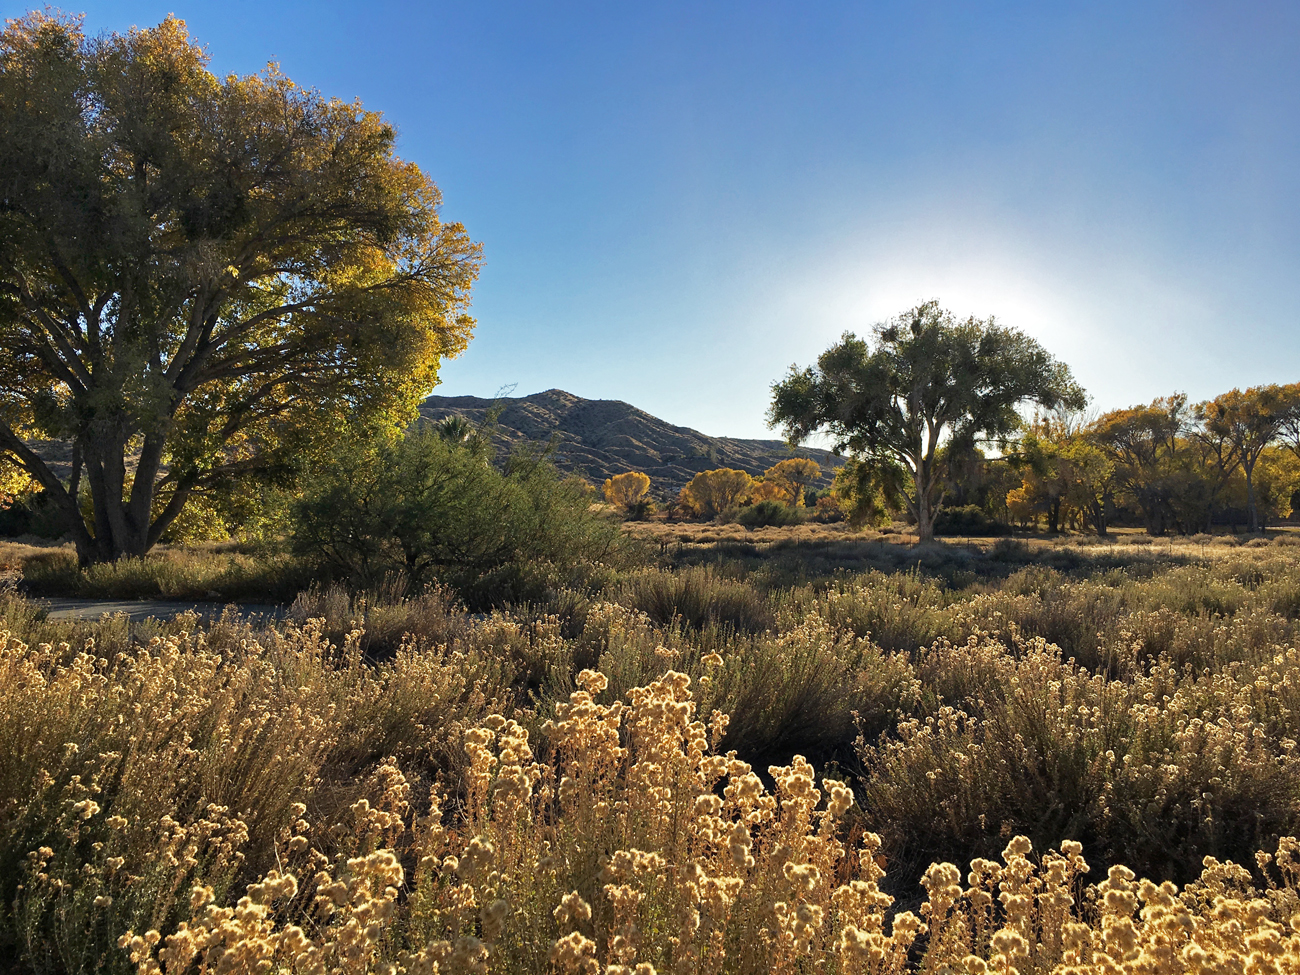 Valley of desert shrubs and cottonwood trees in the glow of the late afternoon sun at Big Morongo Canyon Preserve